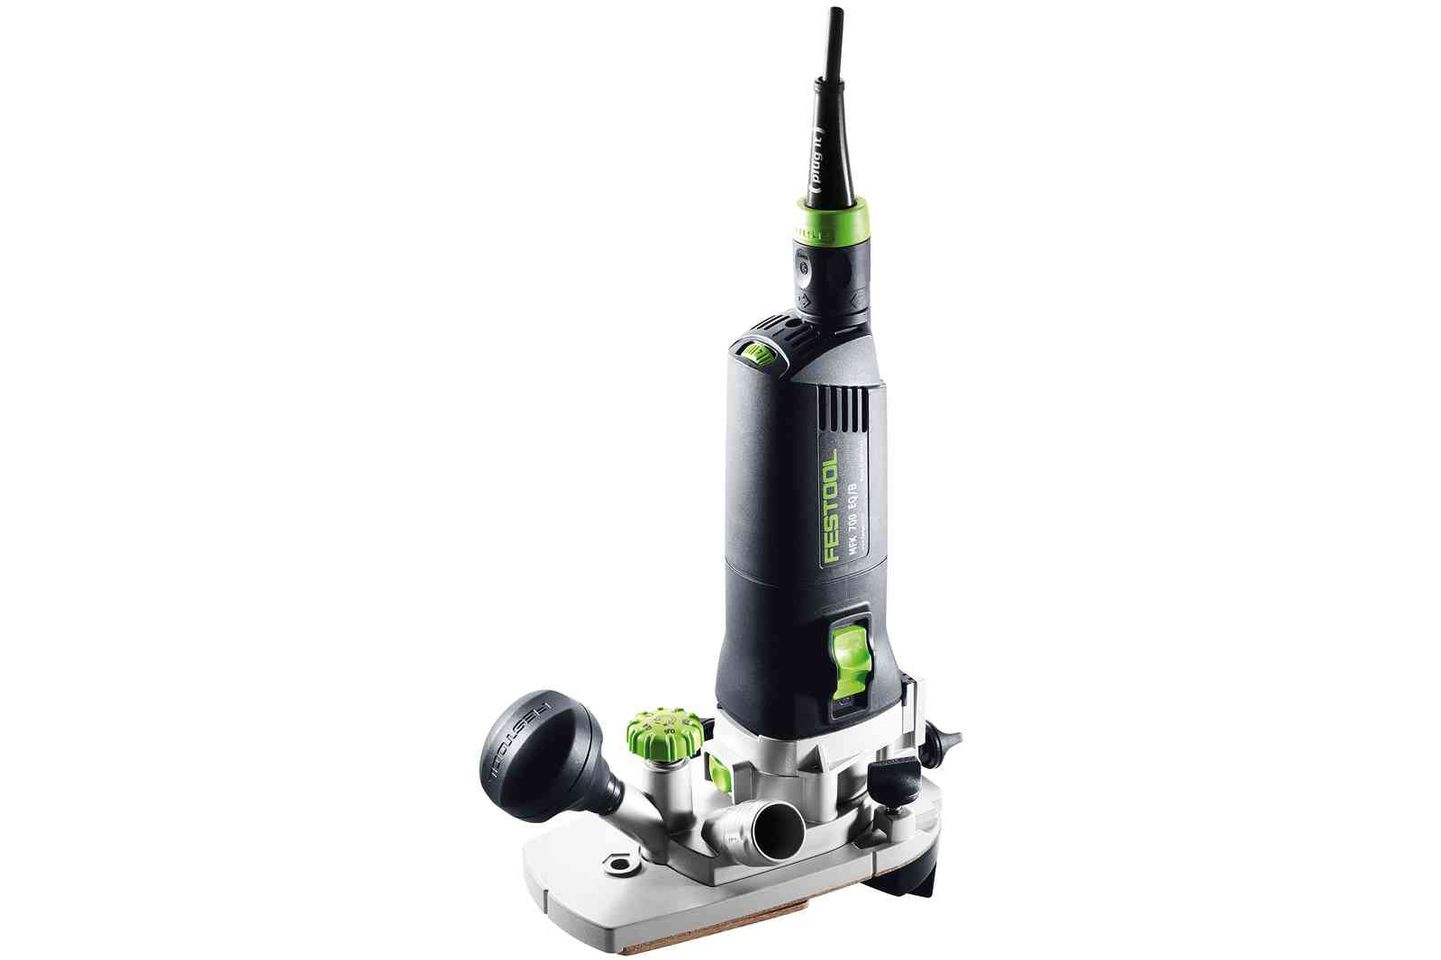 Imagine Festool Masina De Frezat Muchii Mfk 700 Eqb plus